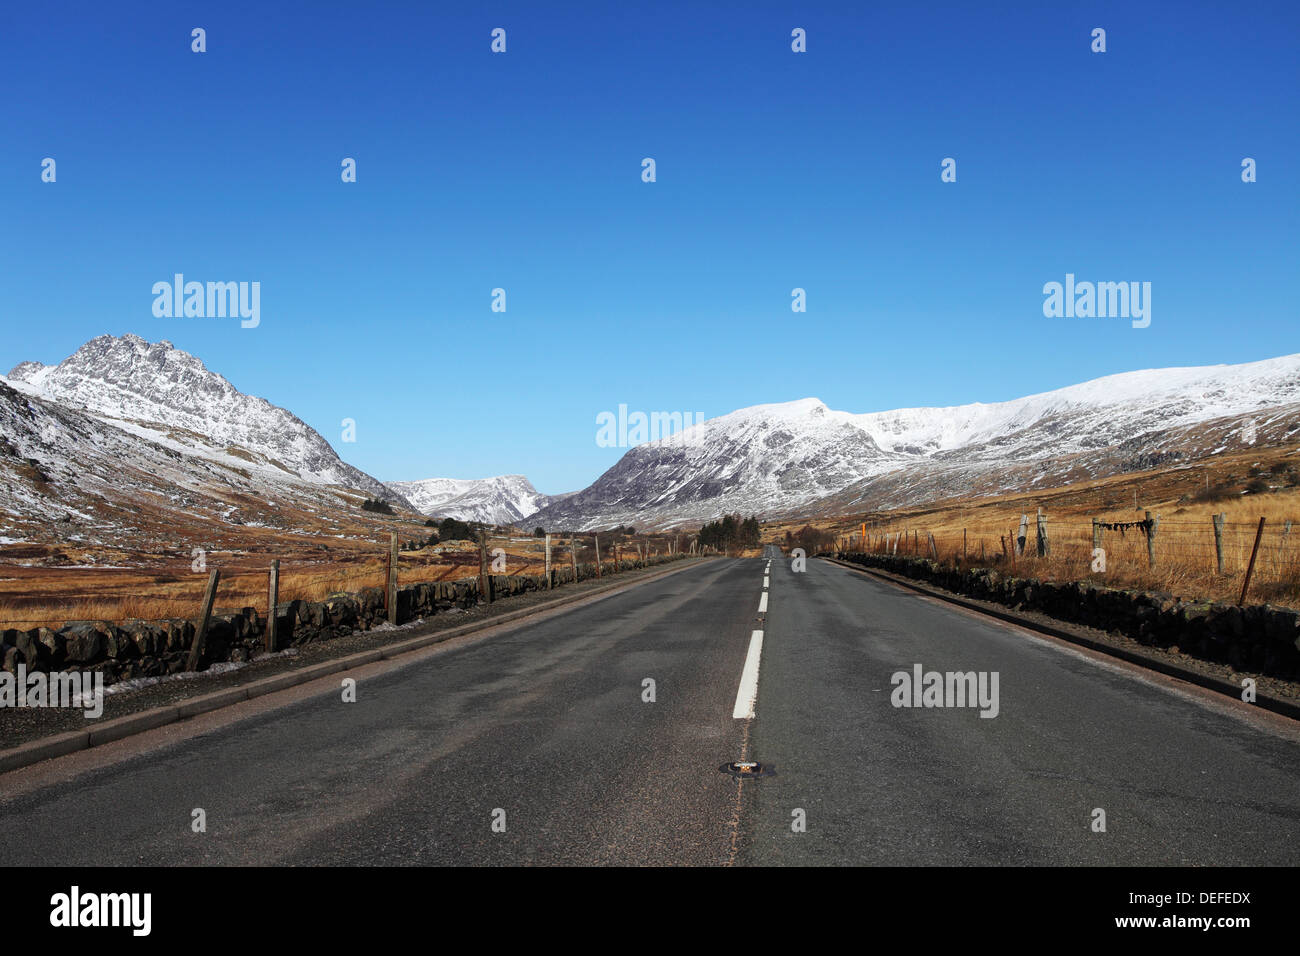 The A5 road runs through past snow-capped mountains in Snowdonia National Park, Wales, United Kingdom, Europe - Stock Image